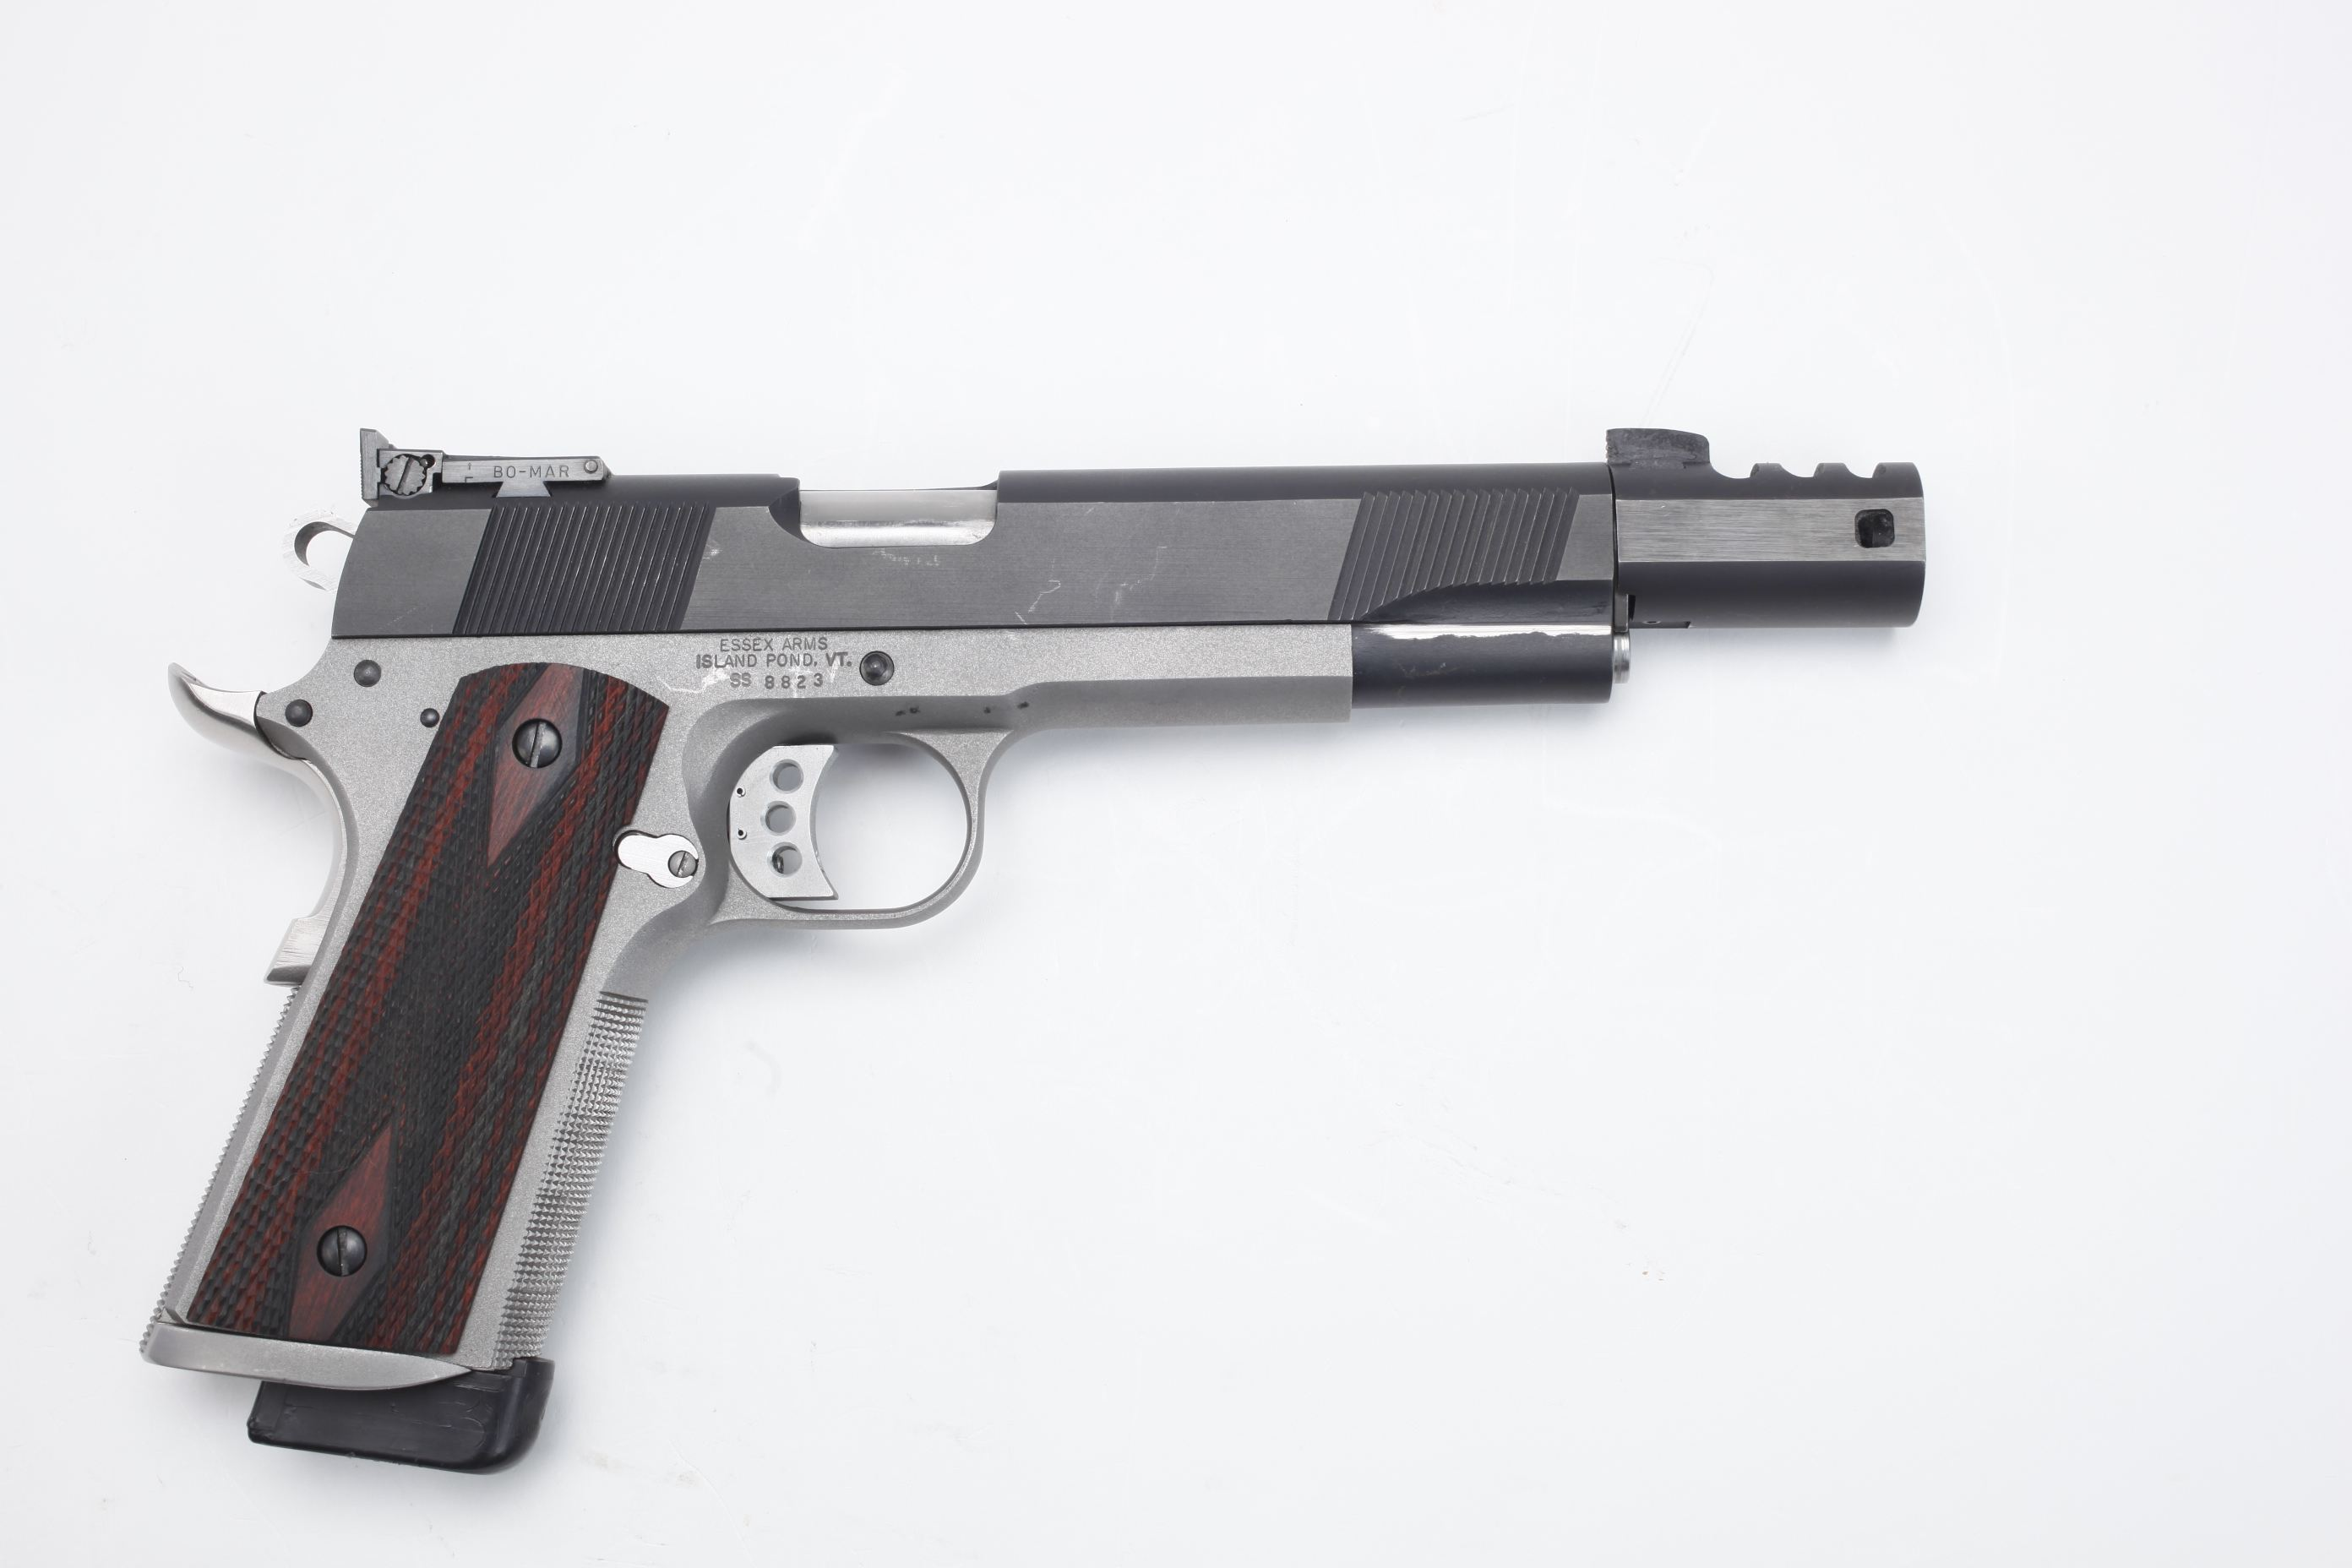 Essex Arms M1911 Race Gun